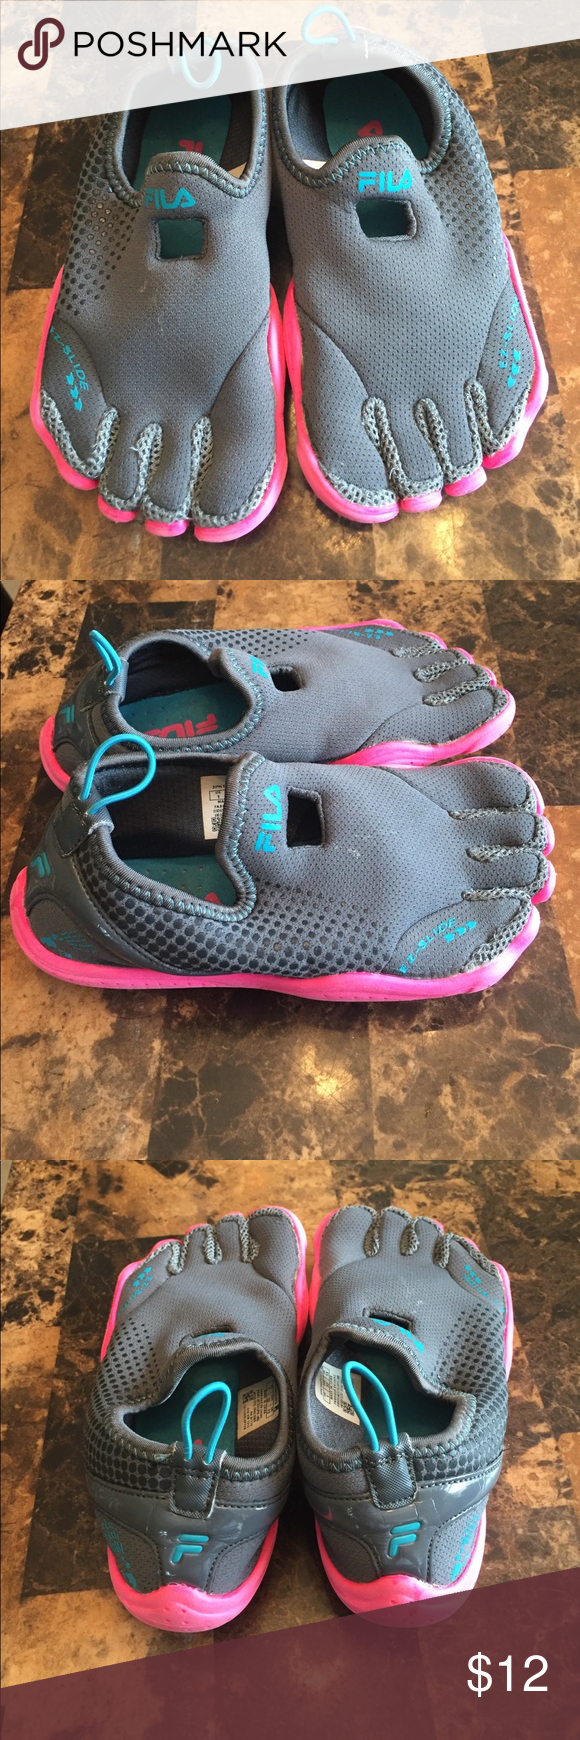 edbfba0facd7 Fila skeleton toes water shoes size 1 Small child size 1